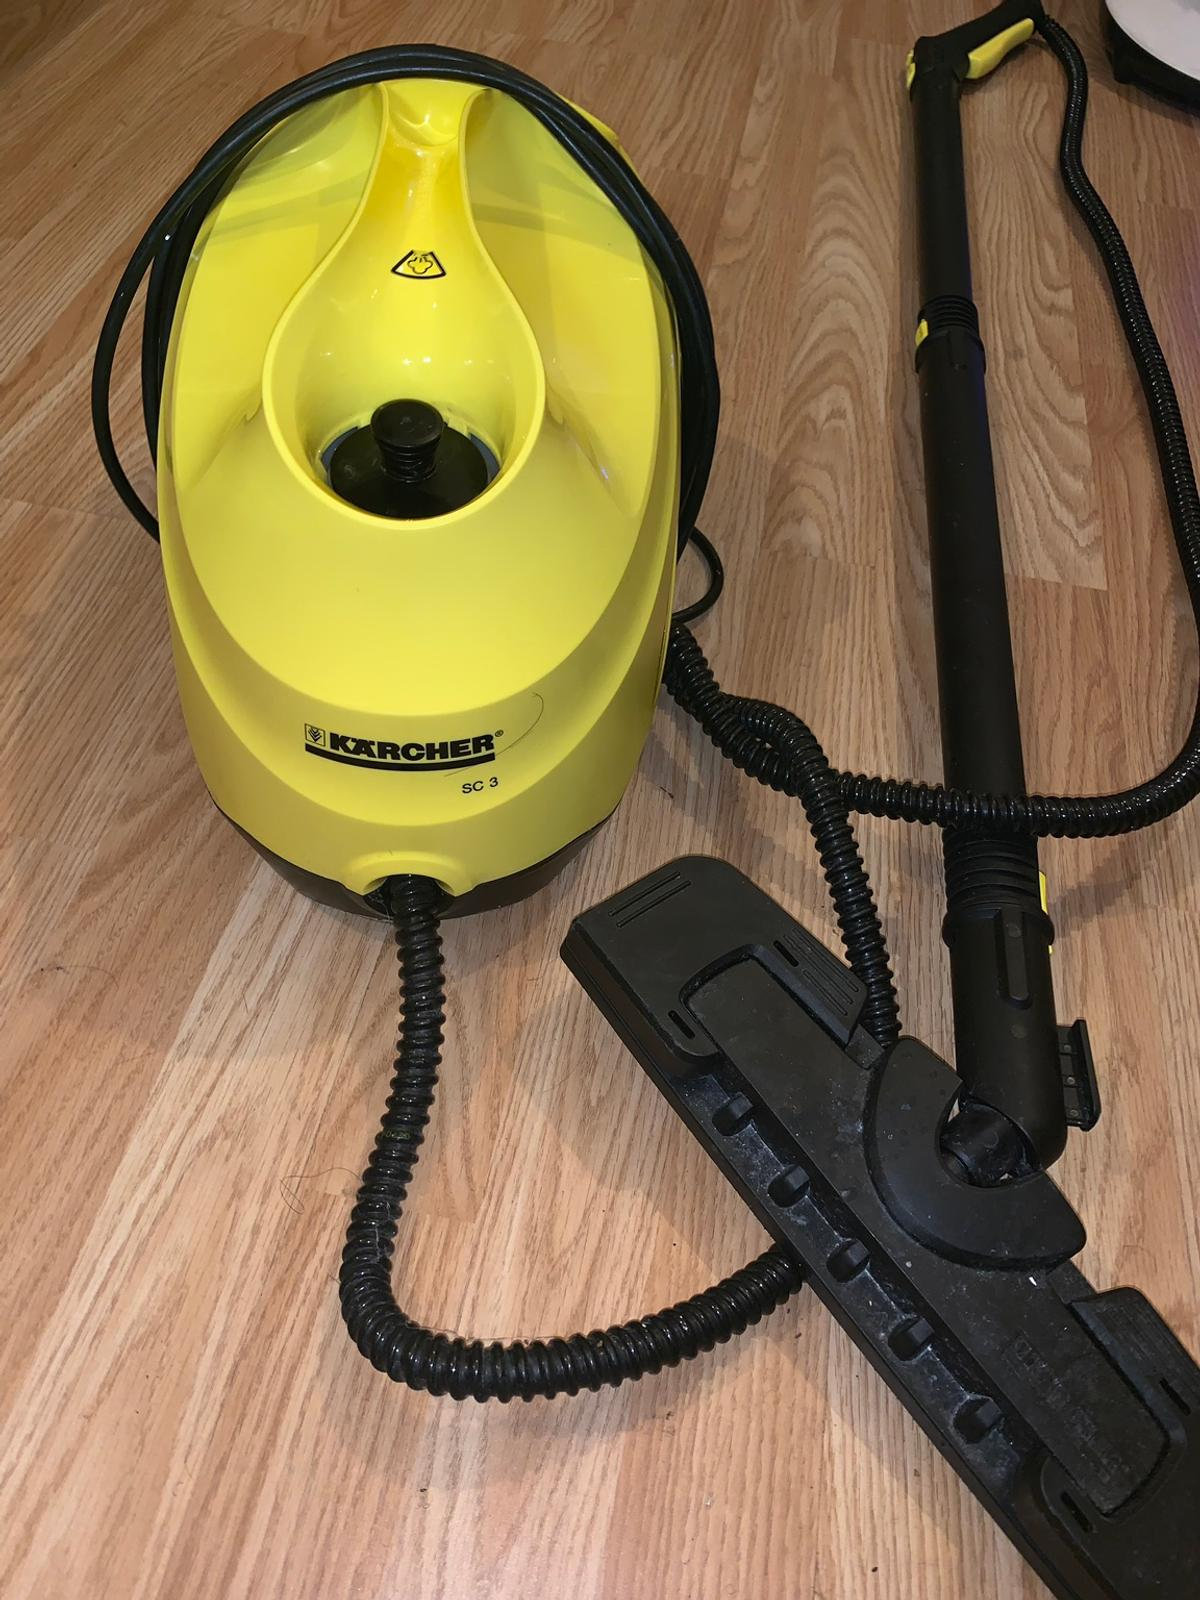 Karcher S3 steam cleaner in W12 London